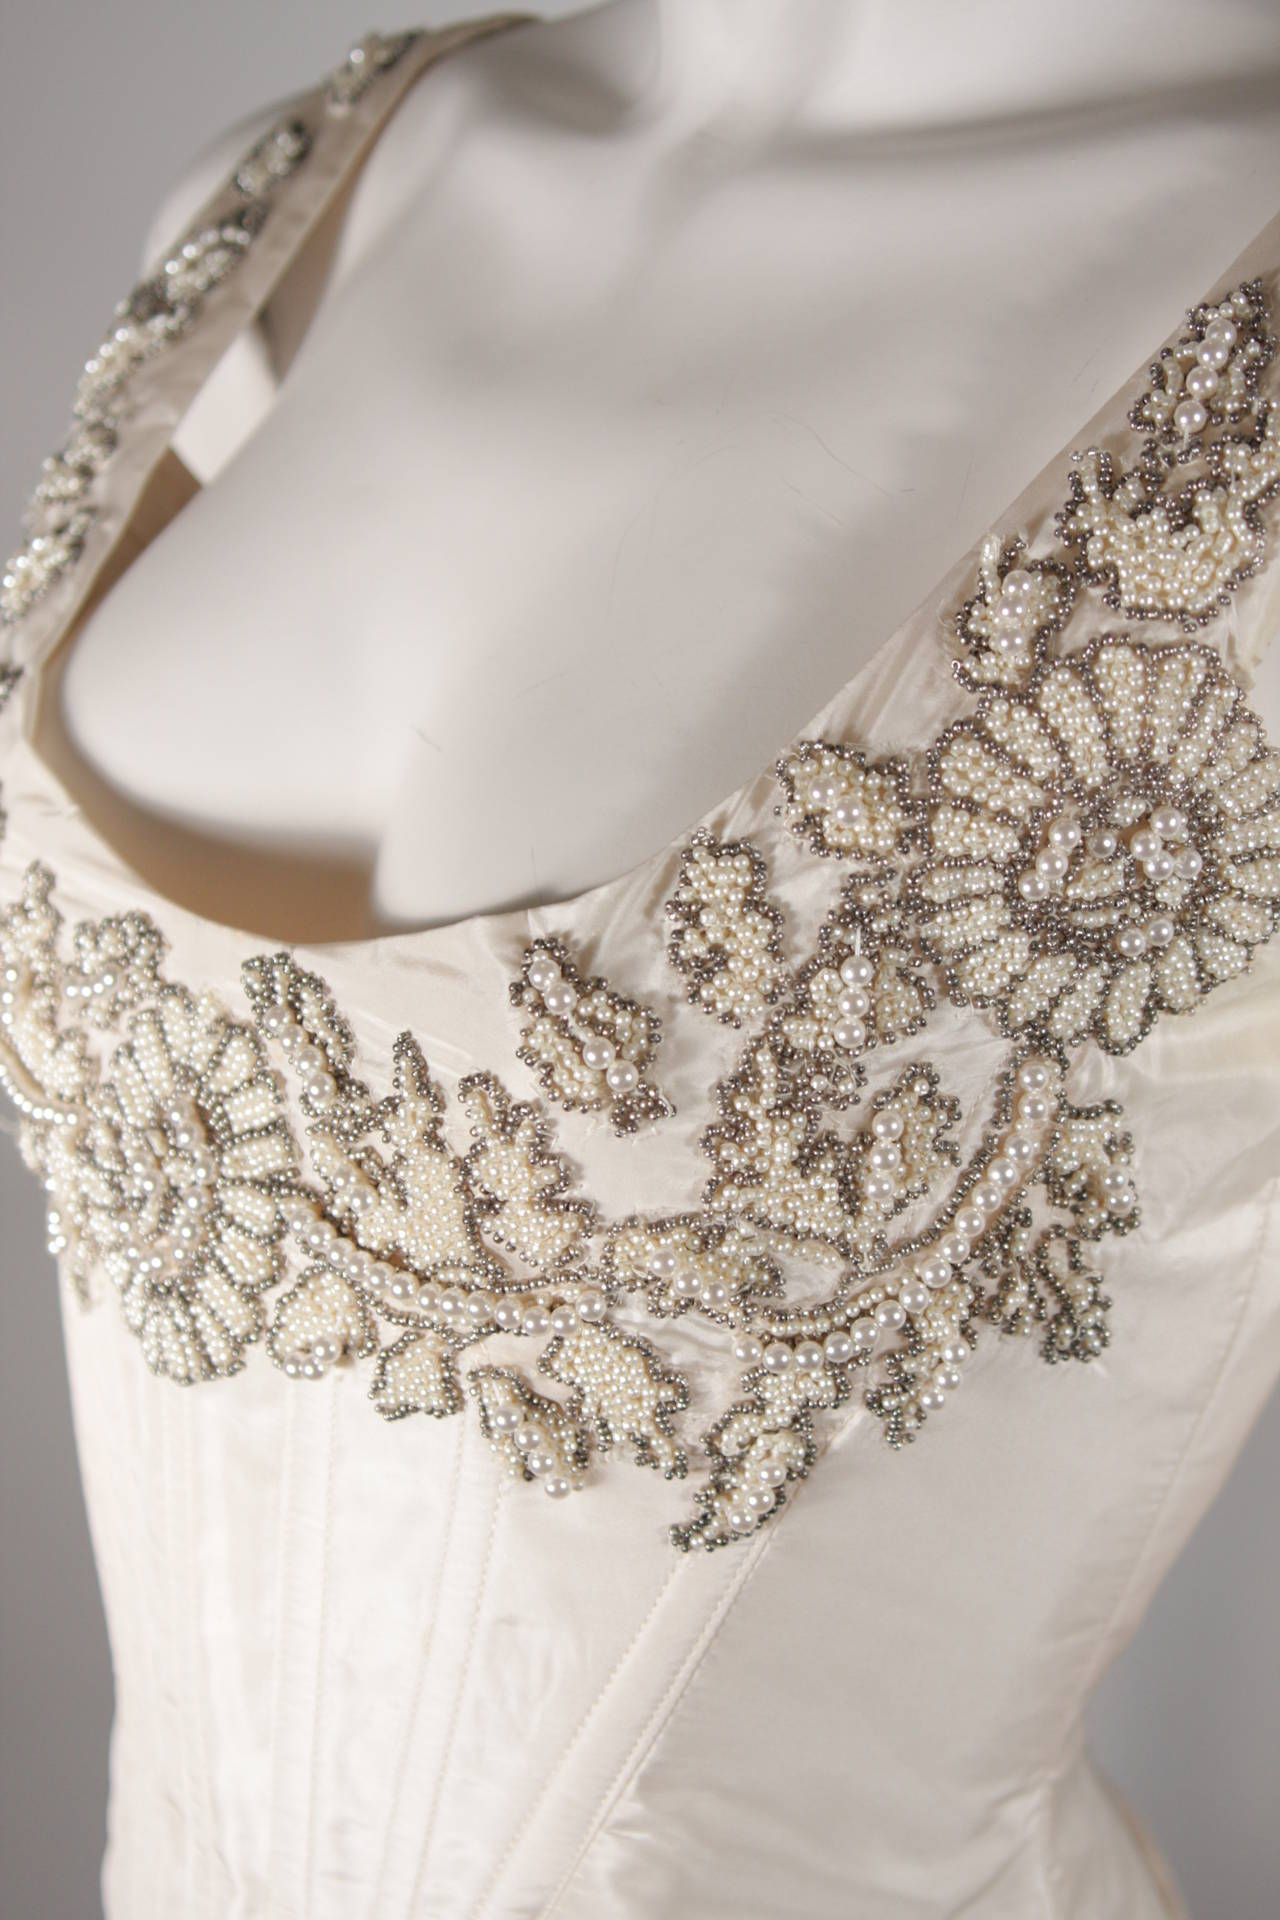 Eavis & Brown London Beaded Cream Silk Corset Bustier Size M In Excellent Condition For Sale In Los Angeles, CA